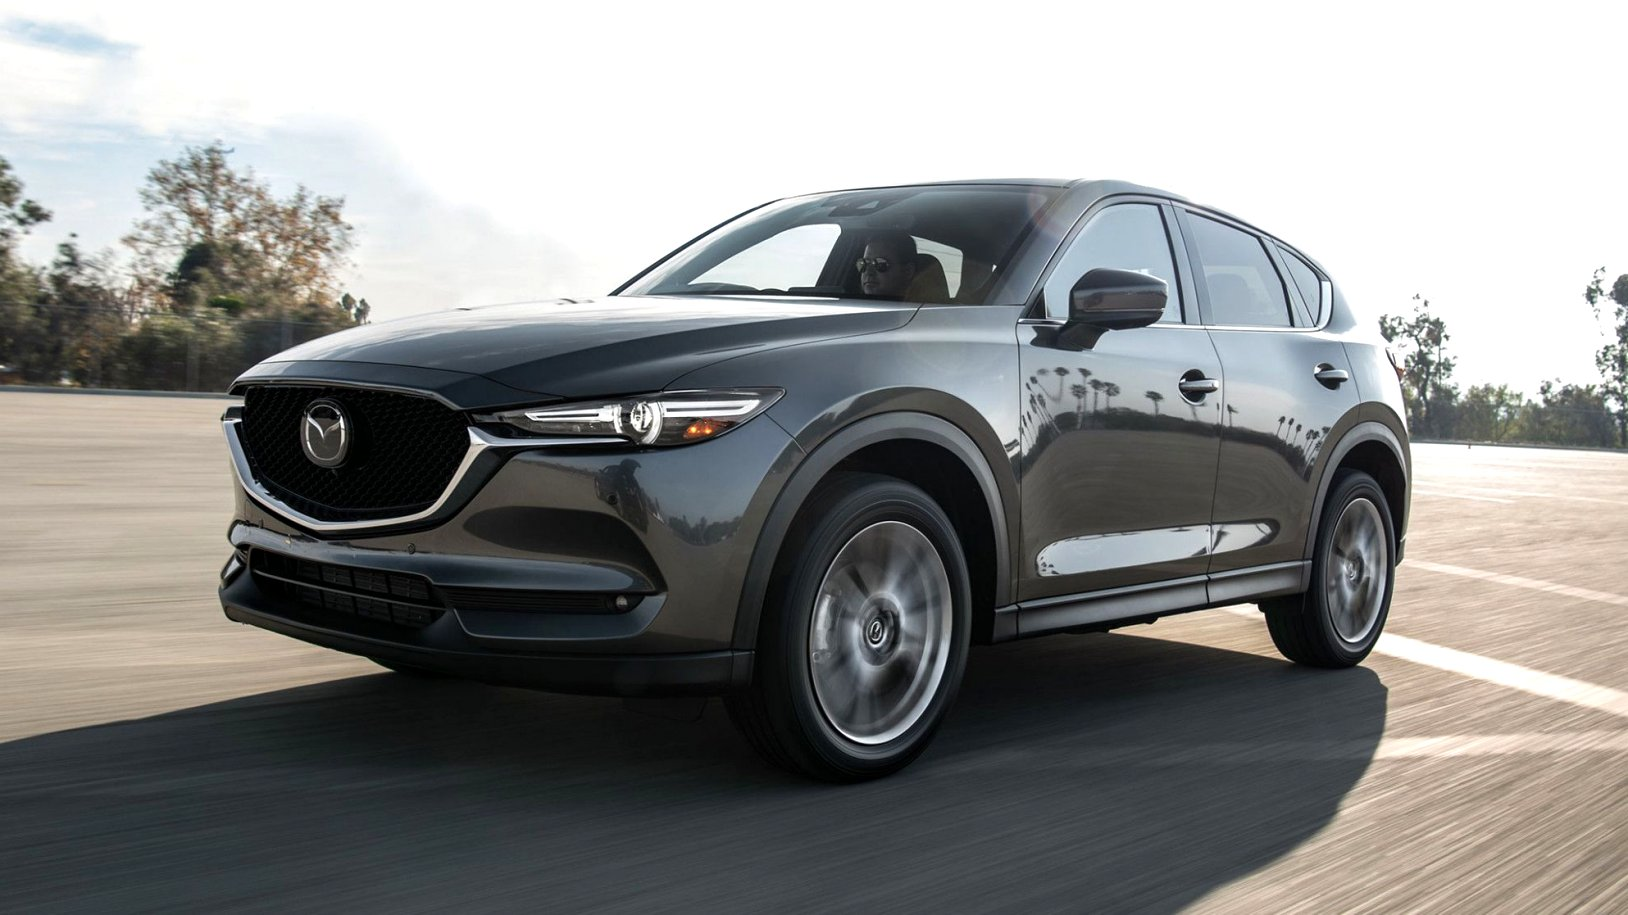 2020 mazda cx 5 zero to 60 Speed Test